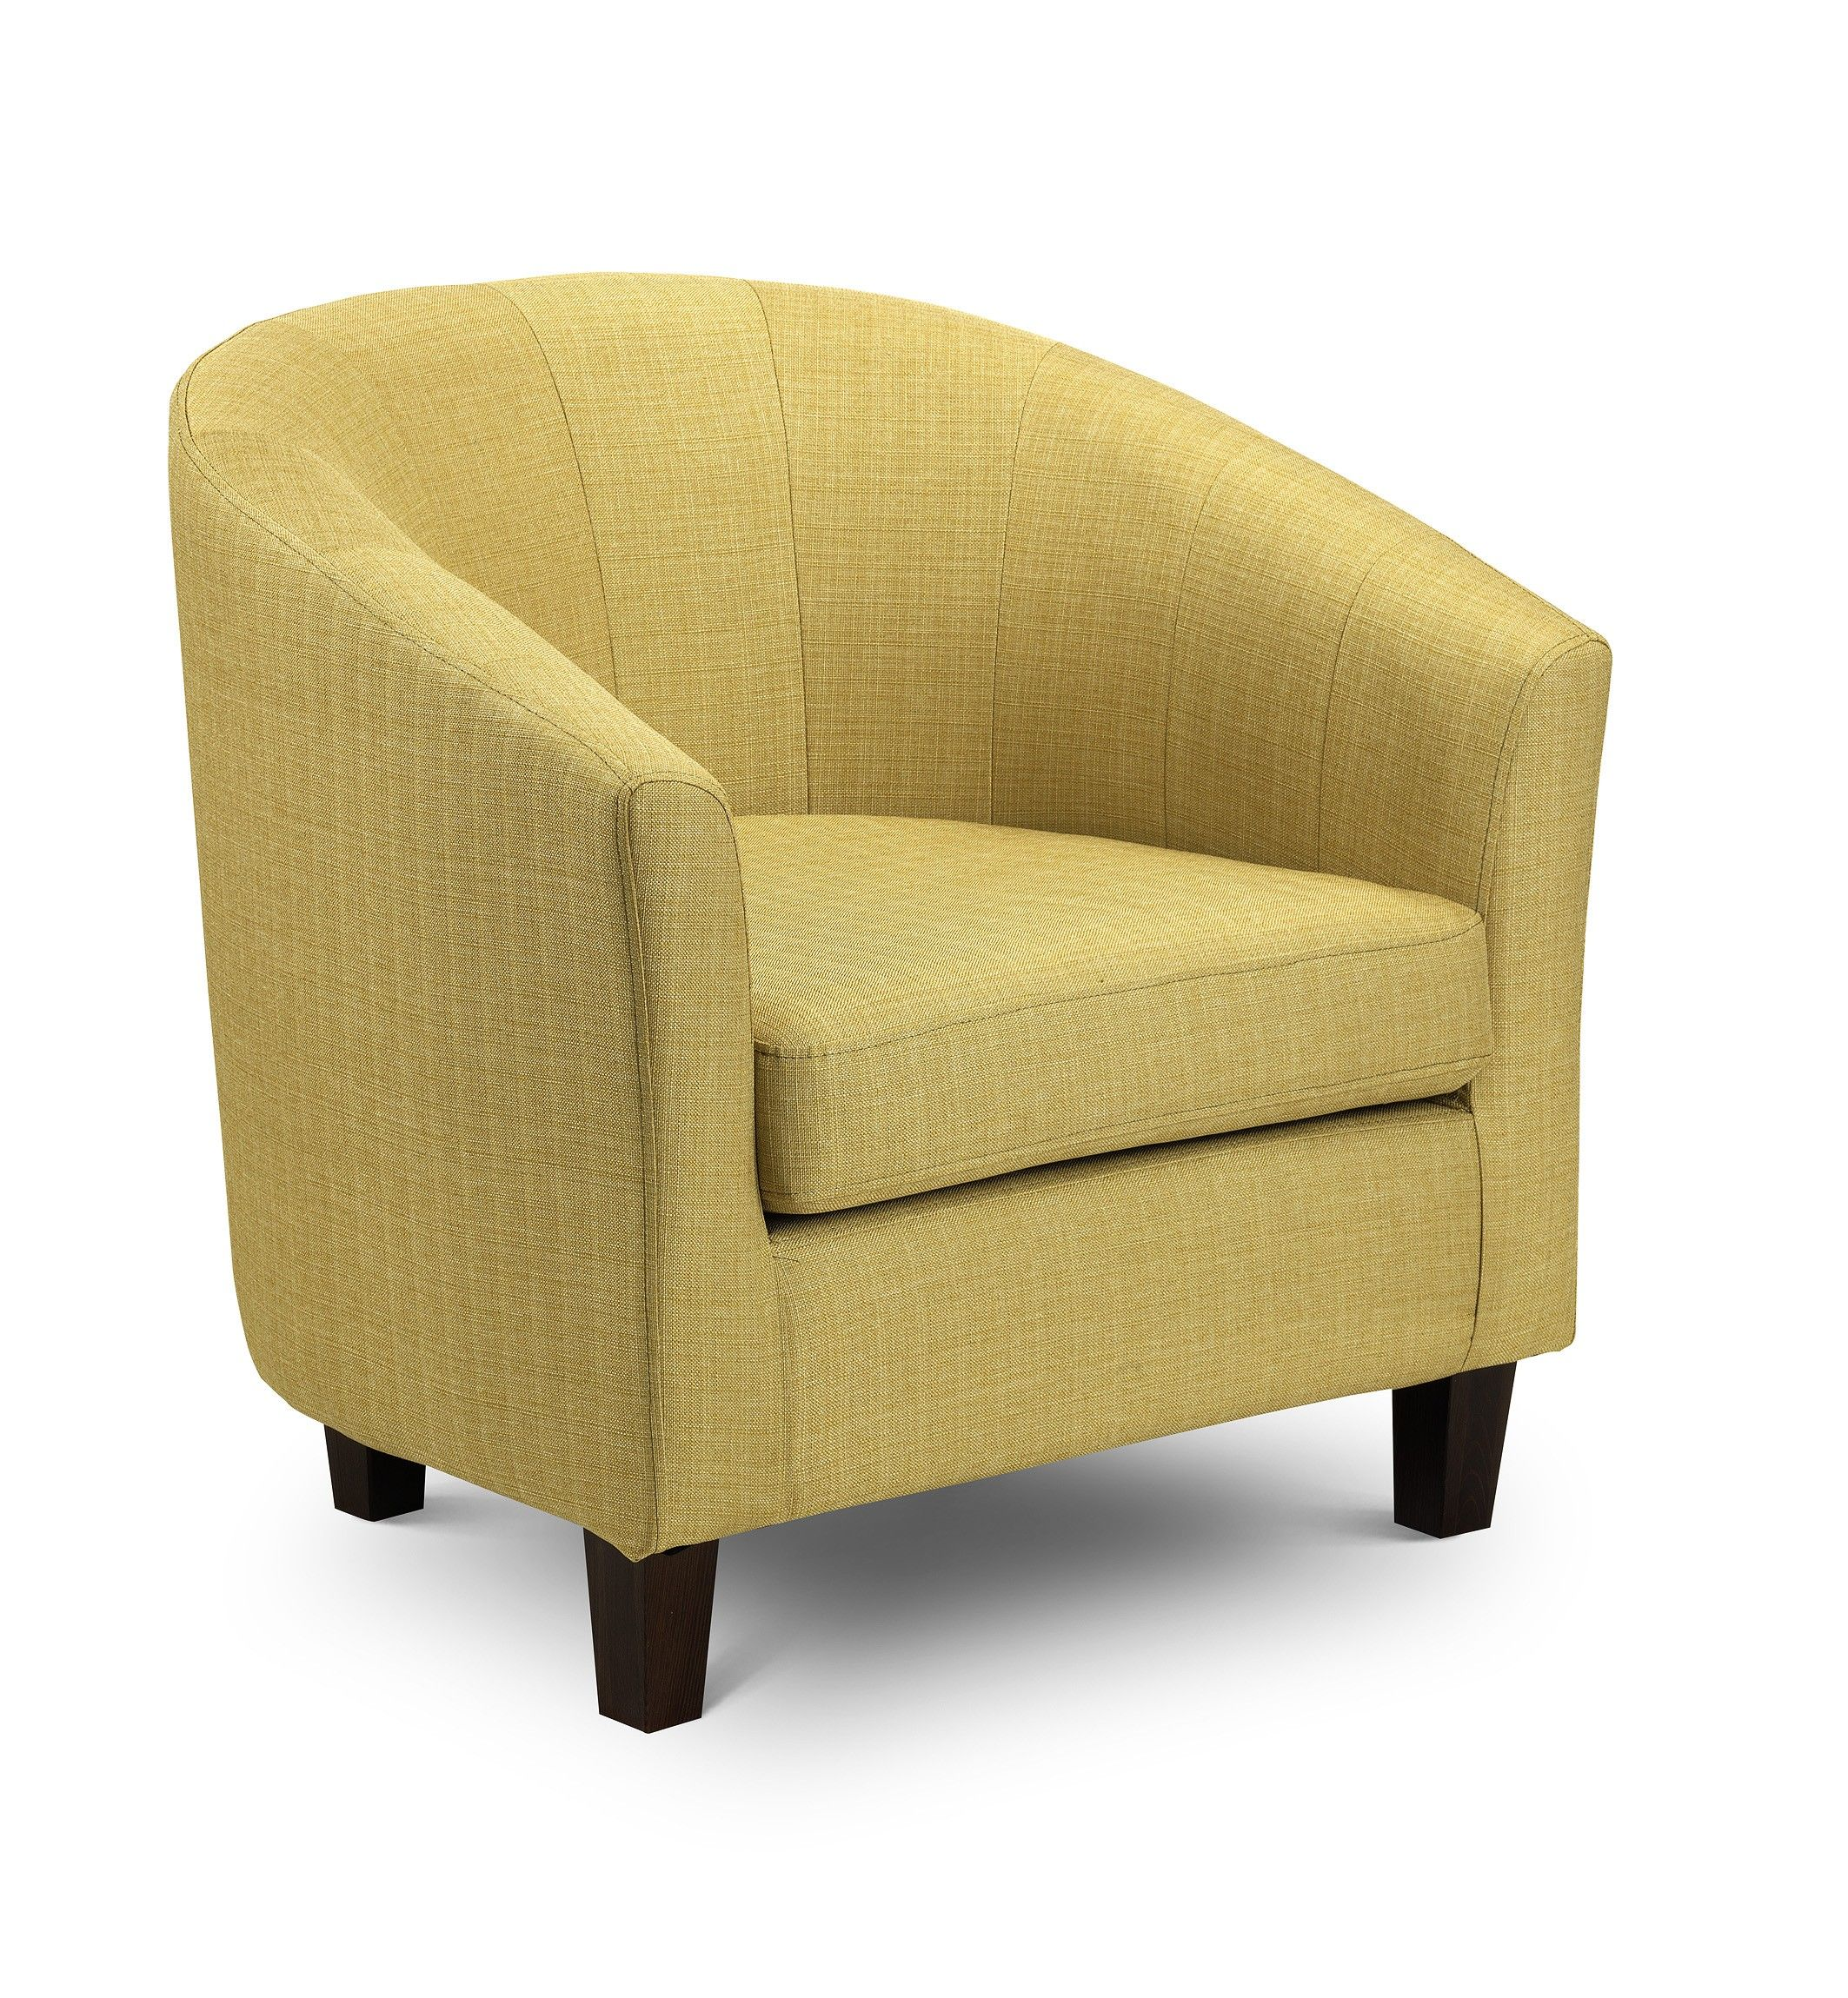 TUB OCCASIONAL CHAIR IN MUSTARD FABRIC